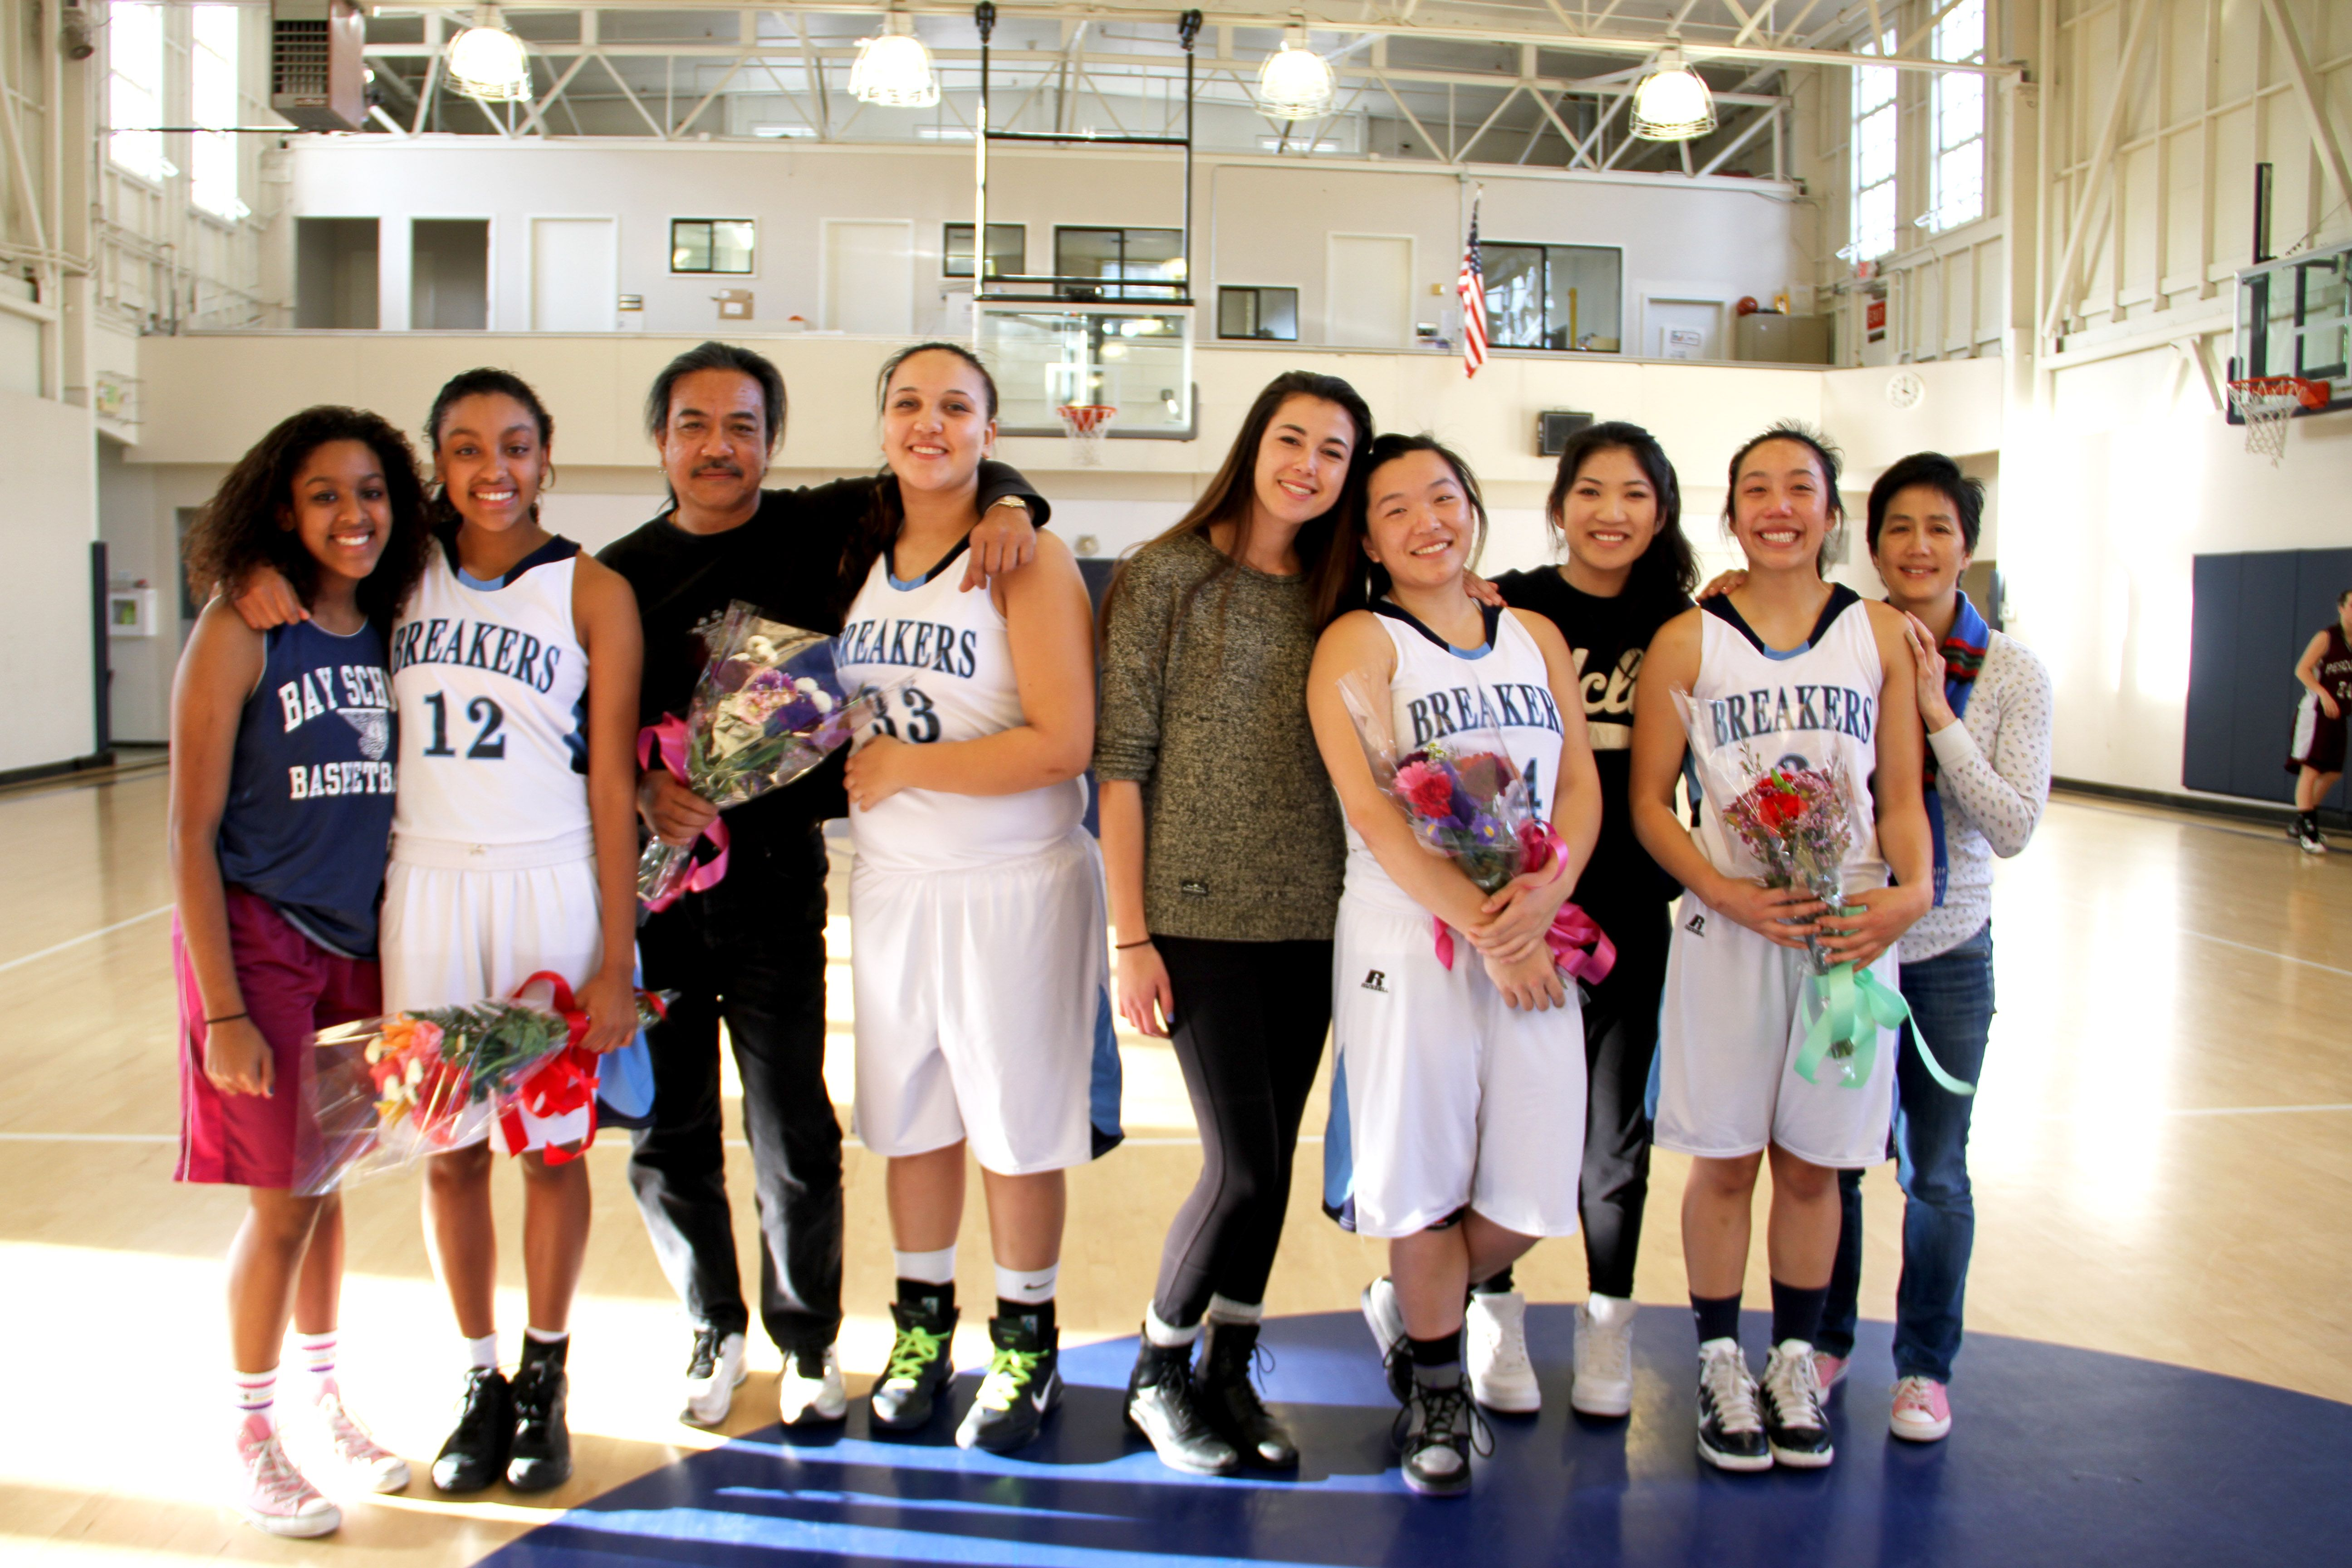 Girls Varsity Basketball S Class Of 2013 Played At Presidio Community Ymca S Letterman Gym For The Last Time Tuesday Https Home Baysch Podium Ymca Lettermen